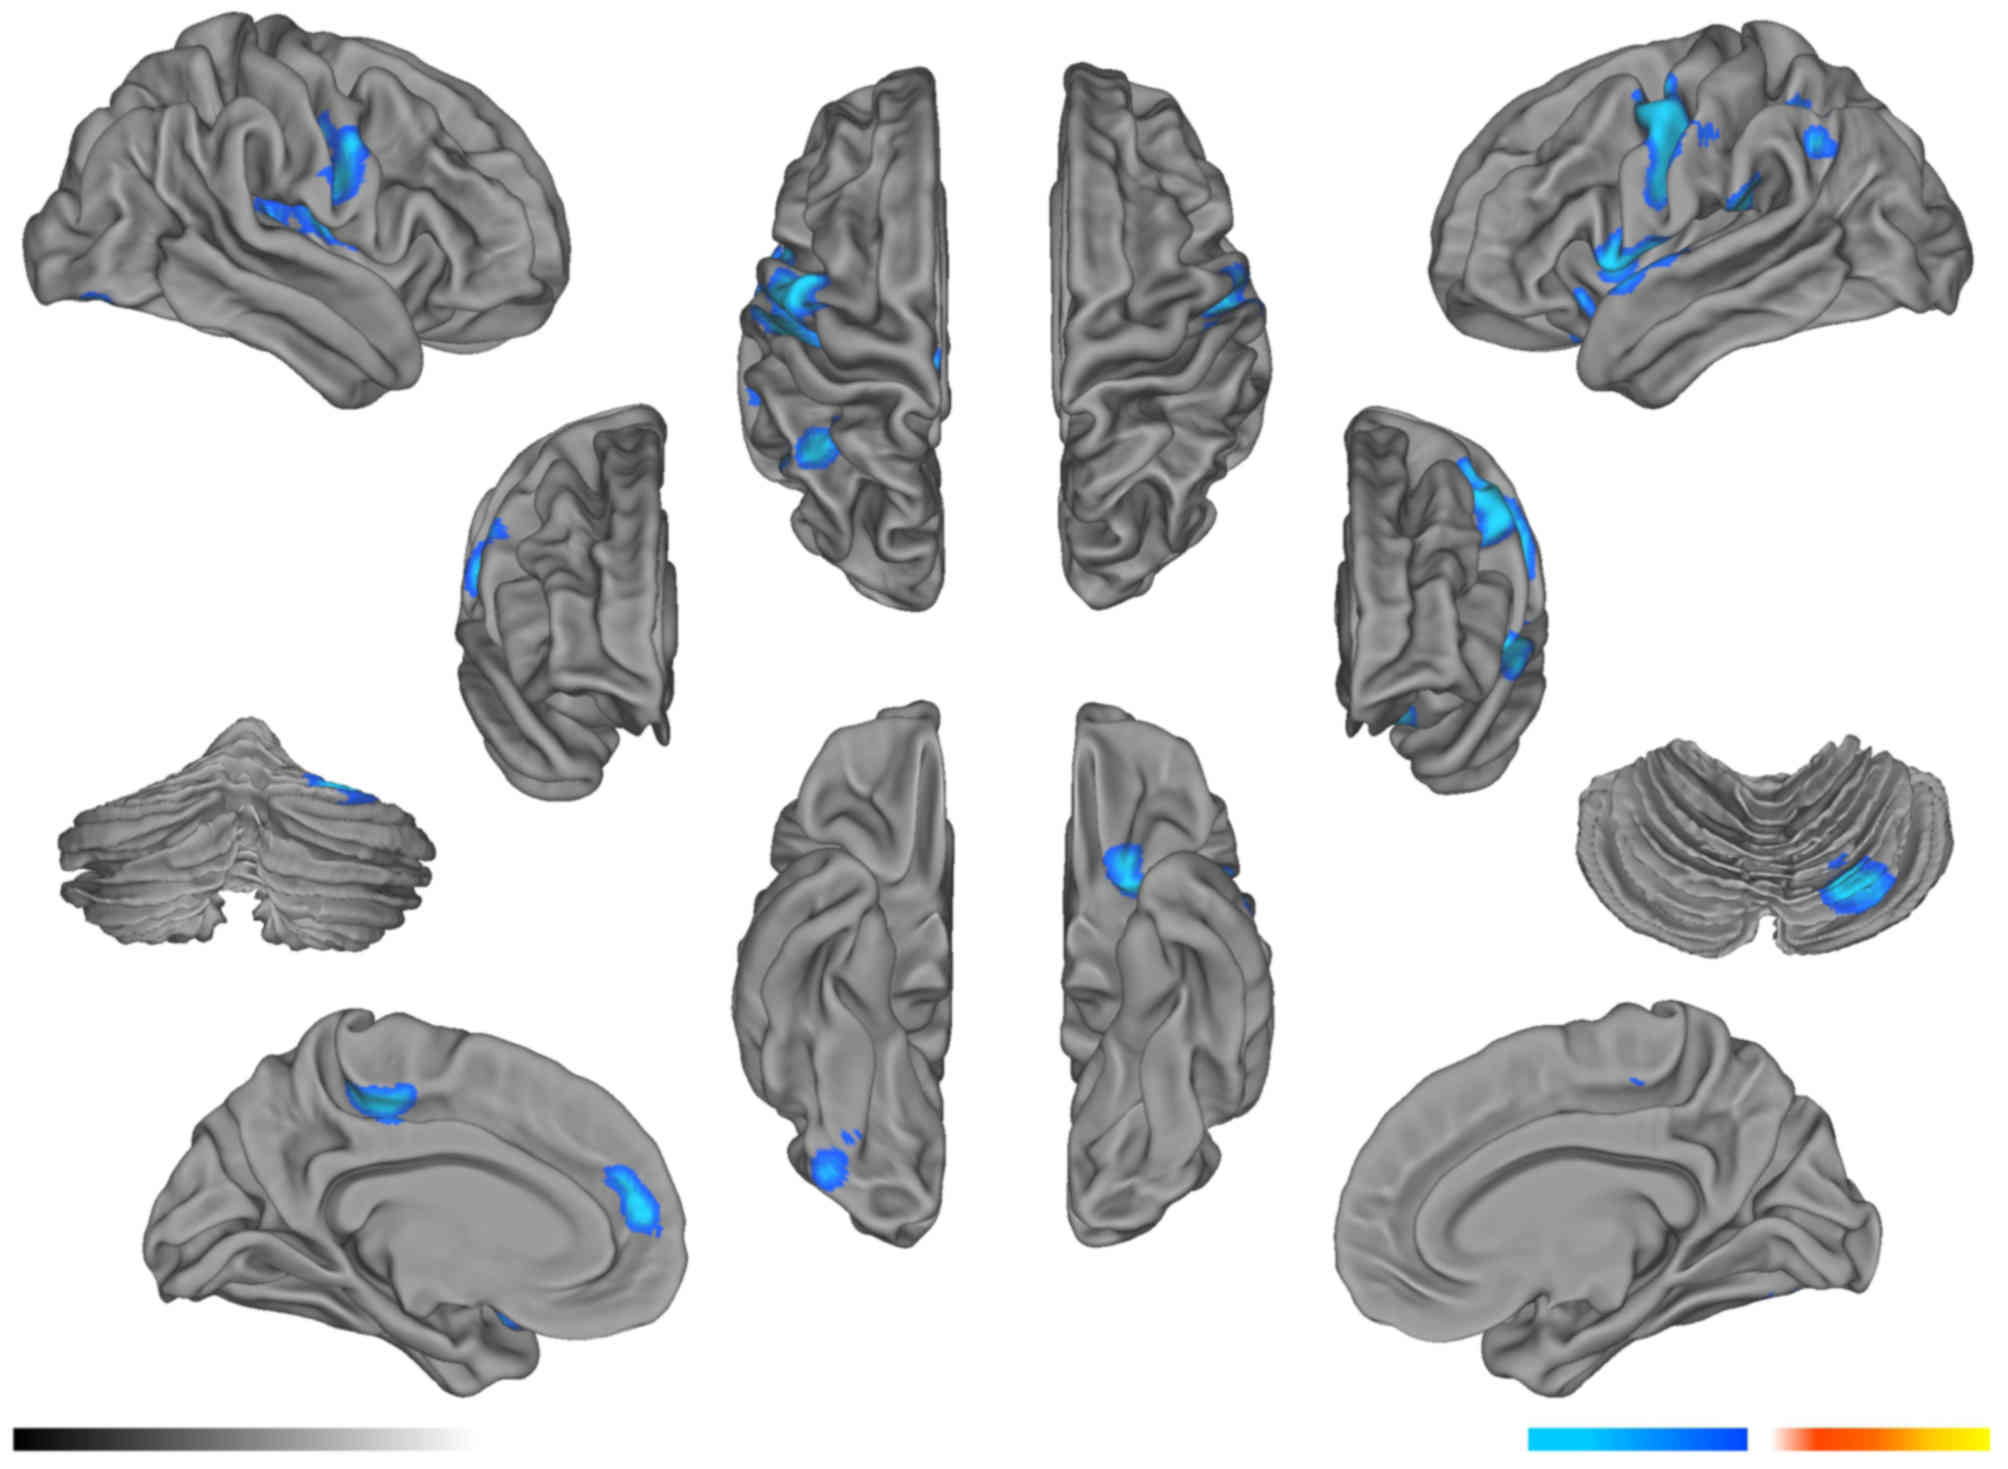 e48f51ba64d Figure 5. Compared with the pre-radiation group, the gray matter volume  decreased significantly in the bilateral temporal lobe, parietal lobe,  right frontal ...